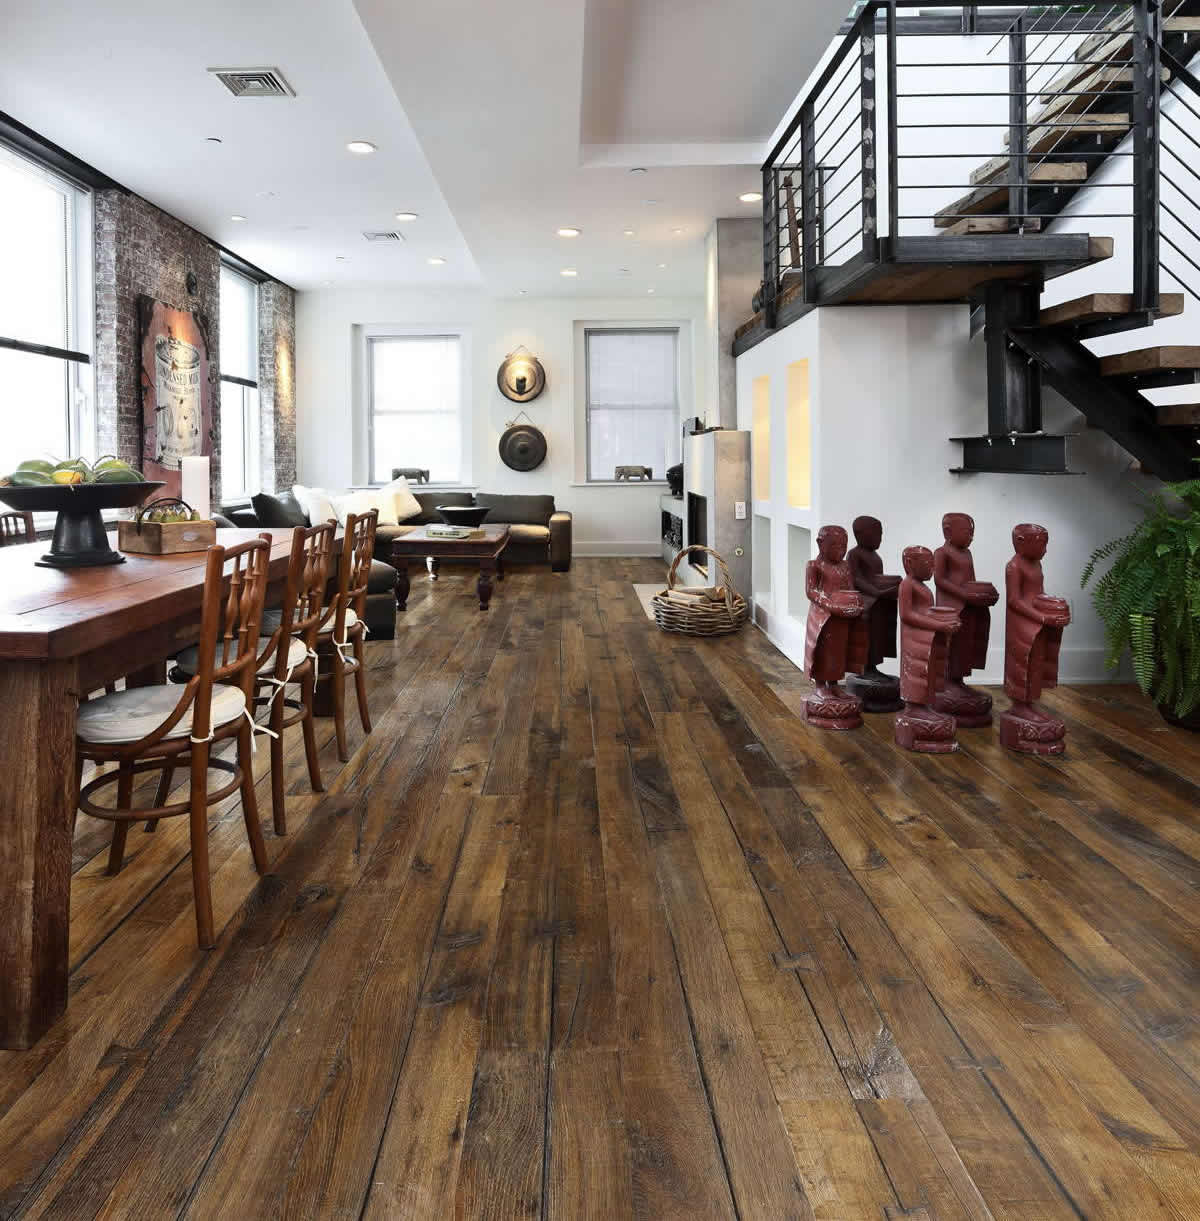 three delivery flooring finishes lecco free floor engineered oak kahrs available wood discounts bulk